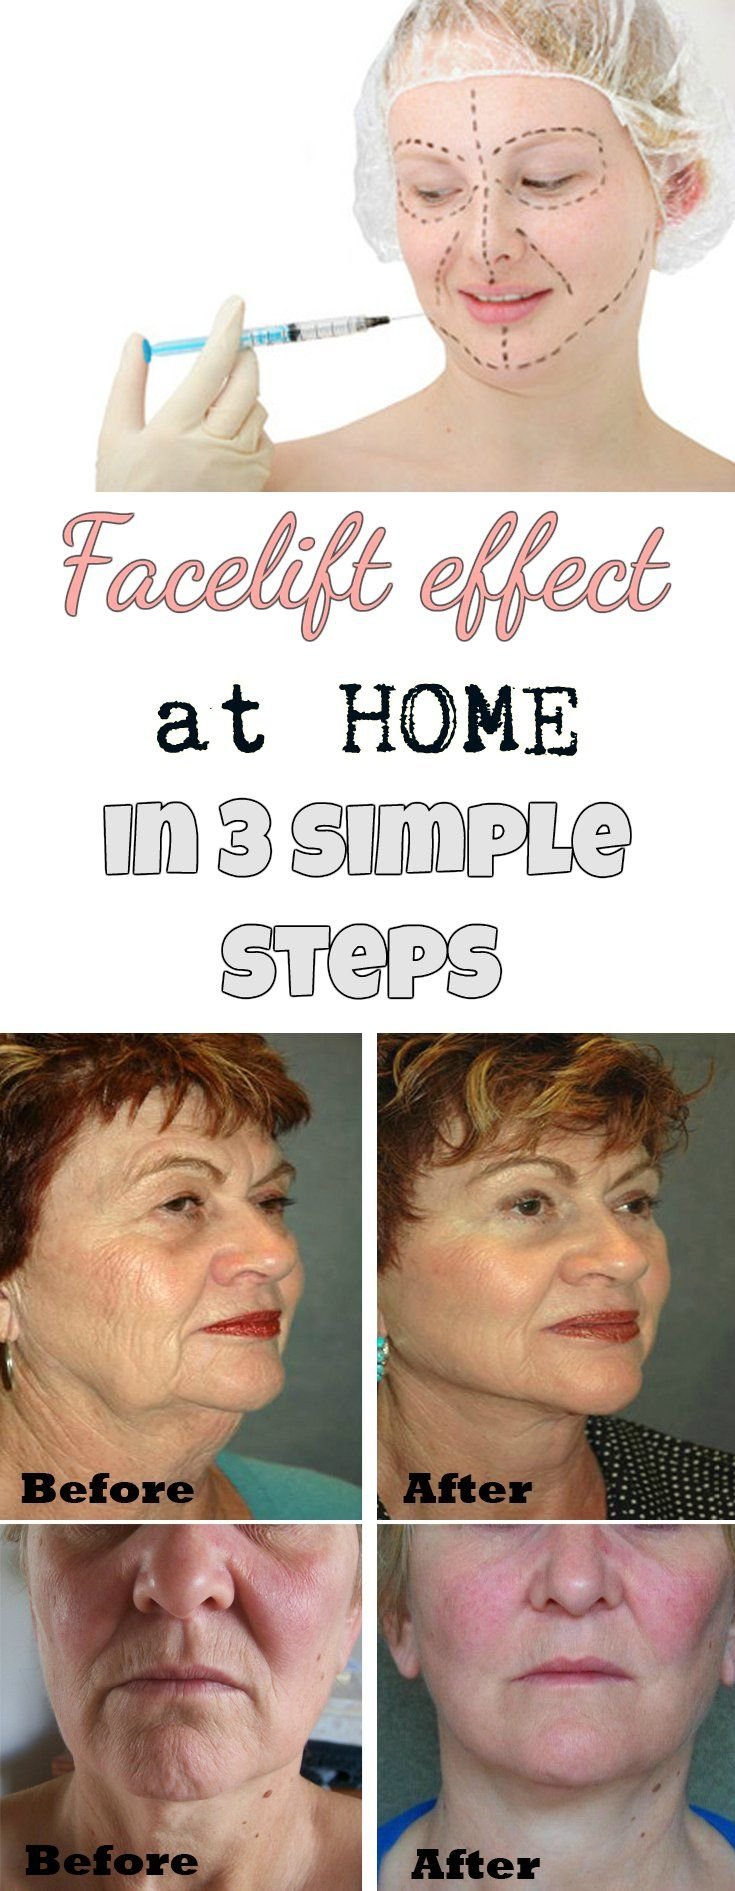 Facelift effect at home in 3 simple steps - WomenZoom.com